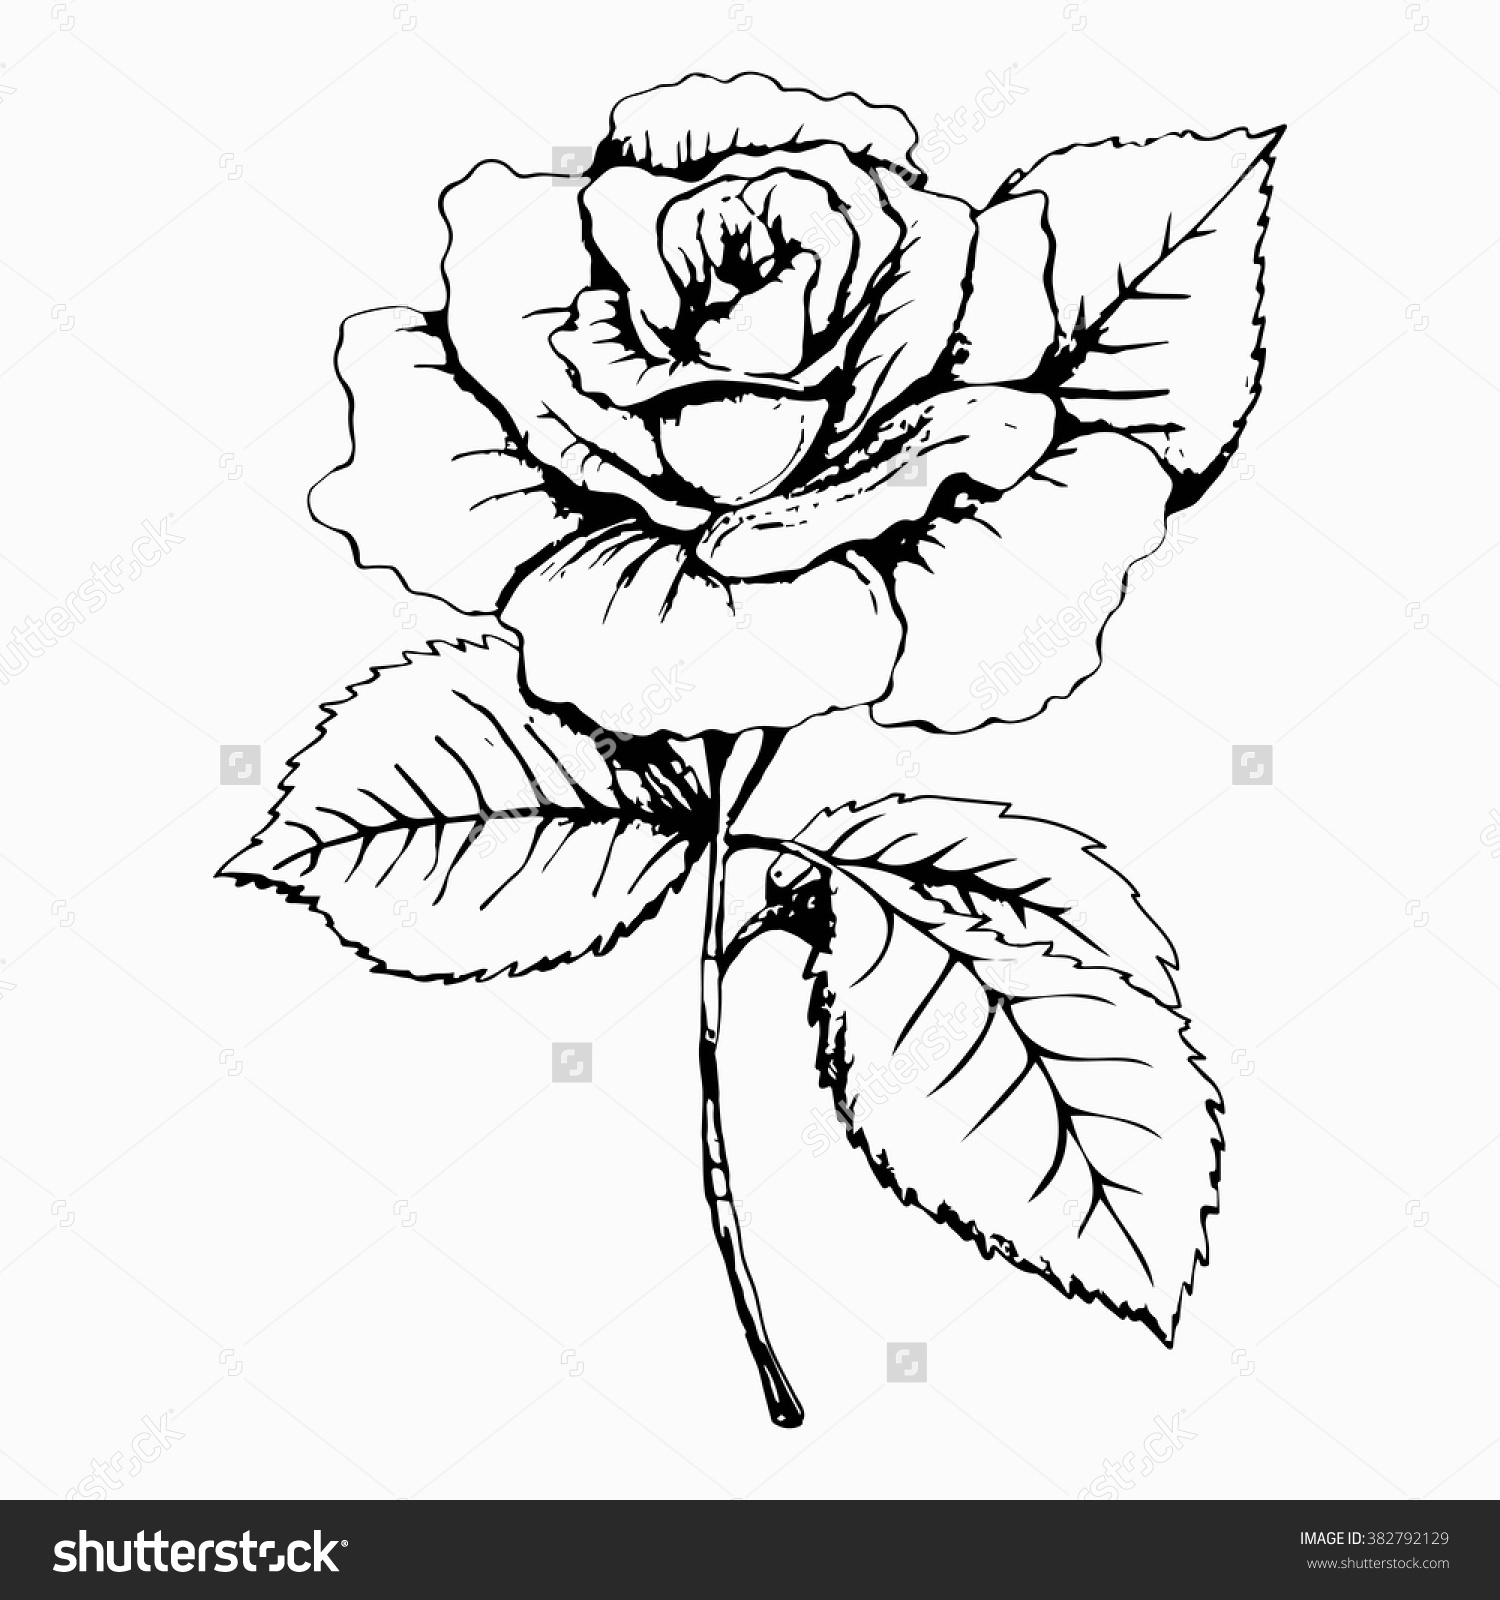 Admirable Flower Rose Sketch Painting Hand Drawing White Bud Petals Auto Wiring Cloud Apomsimijknierdonabenoleattemohammedshrineorg